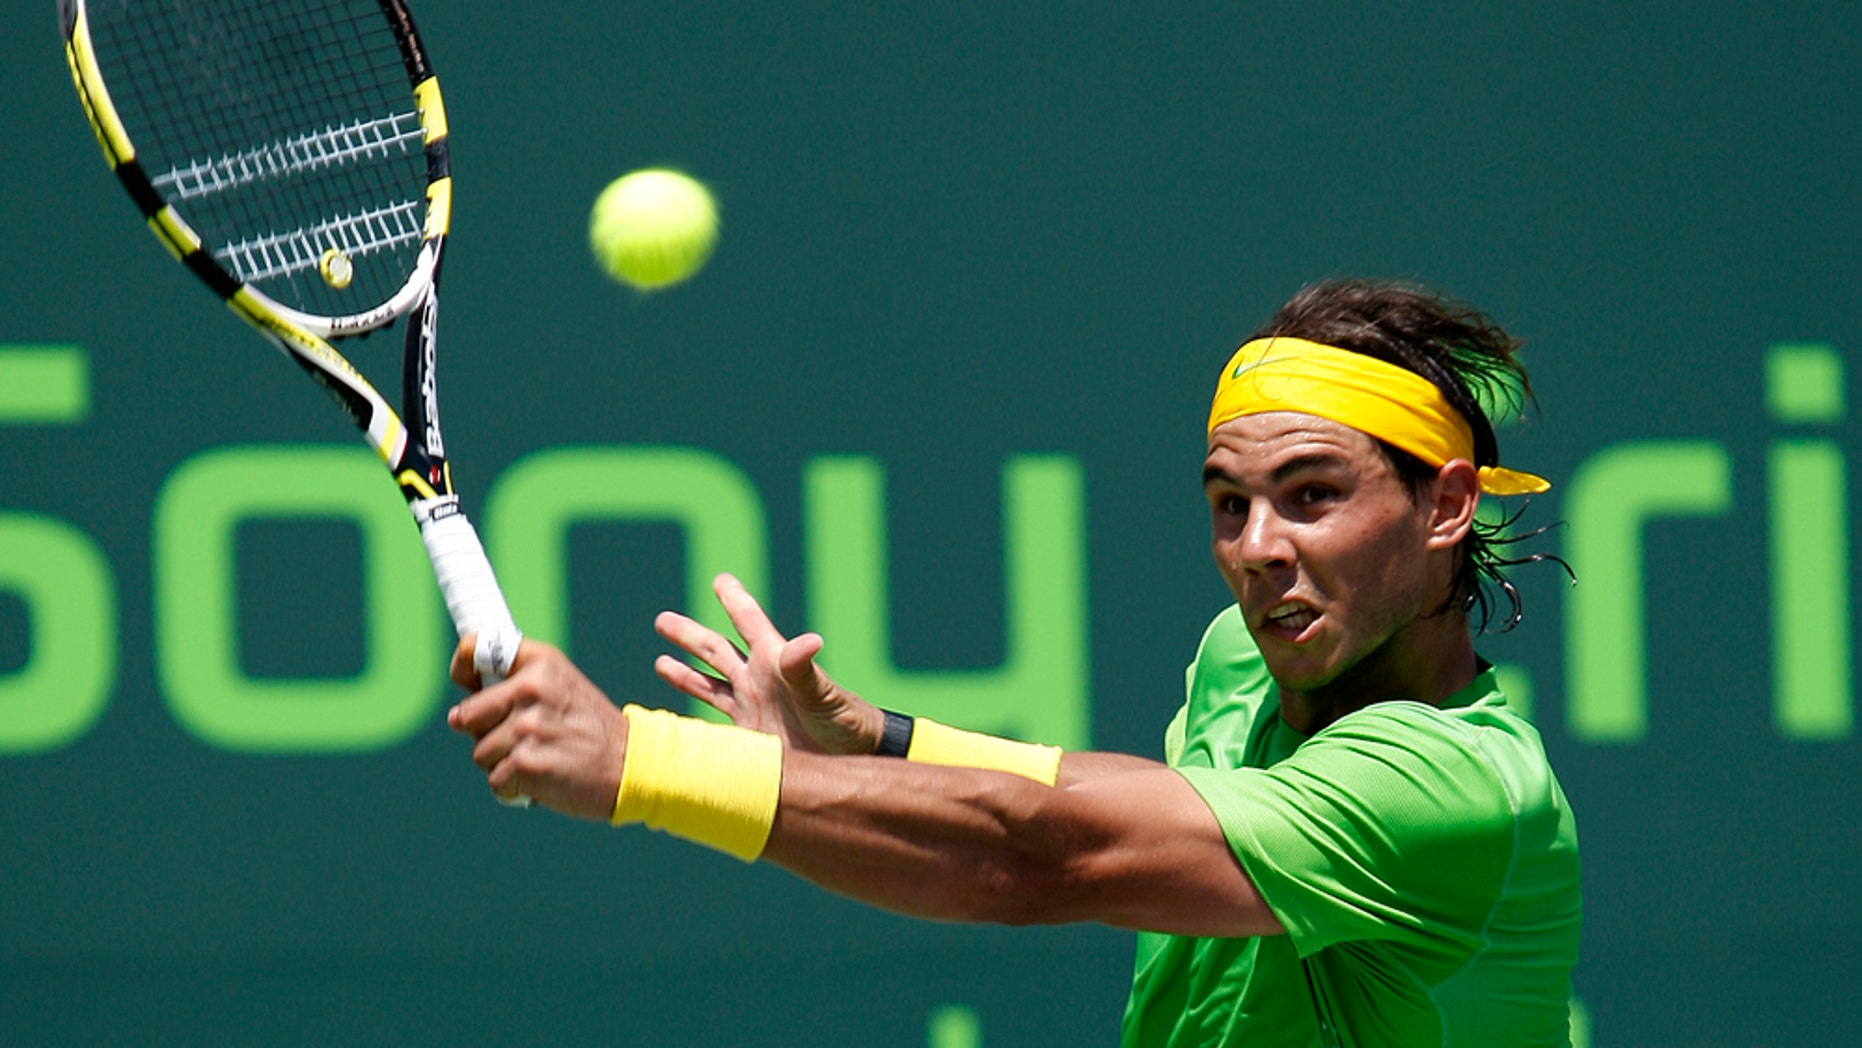 Rafael Nadal, of Spain, returns the ball to Novak Djokovic, of Serbia, at the final of the Sony Ericsson Open tennis tournament in Key Biscayne, Fla., Sunday, April 3, 2011. (AP Photo/J Pat Carter)